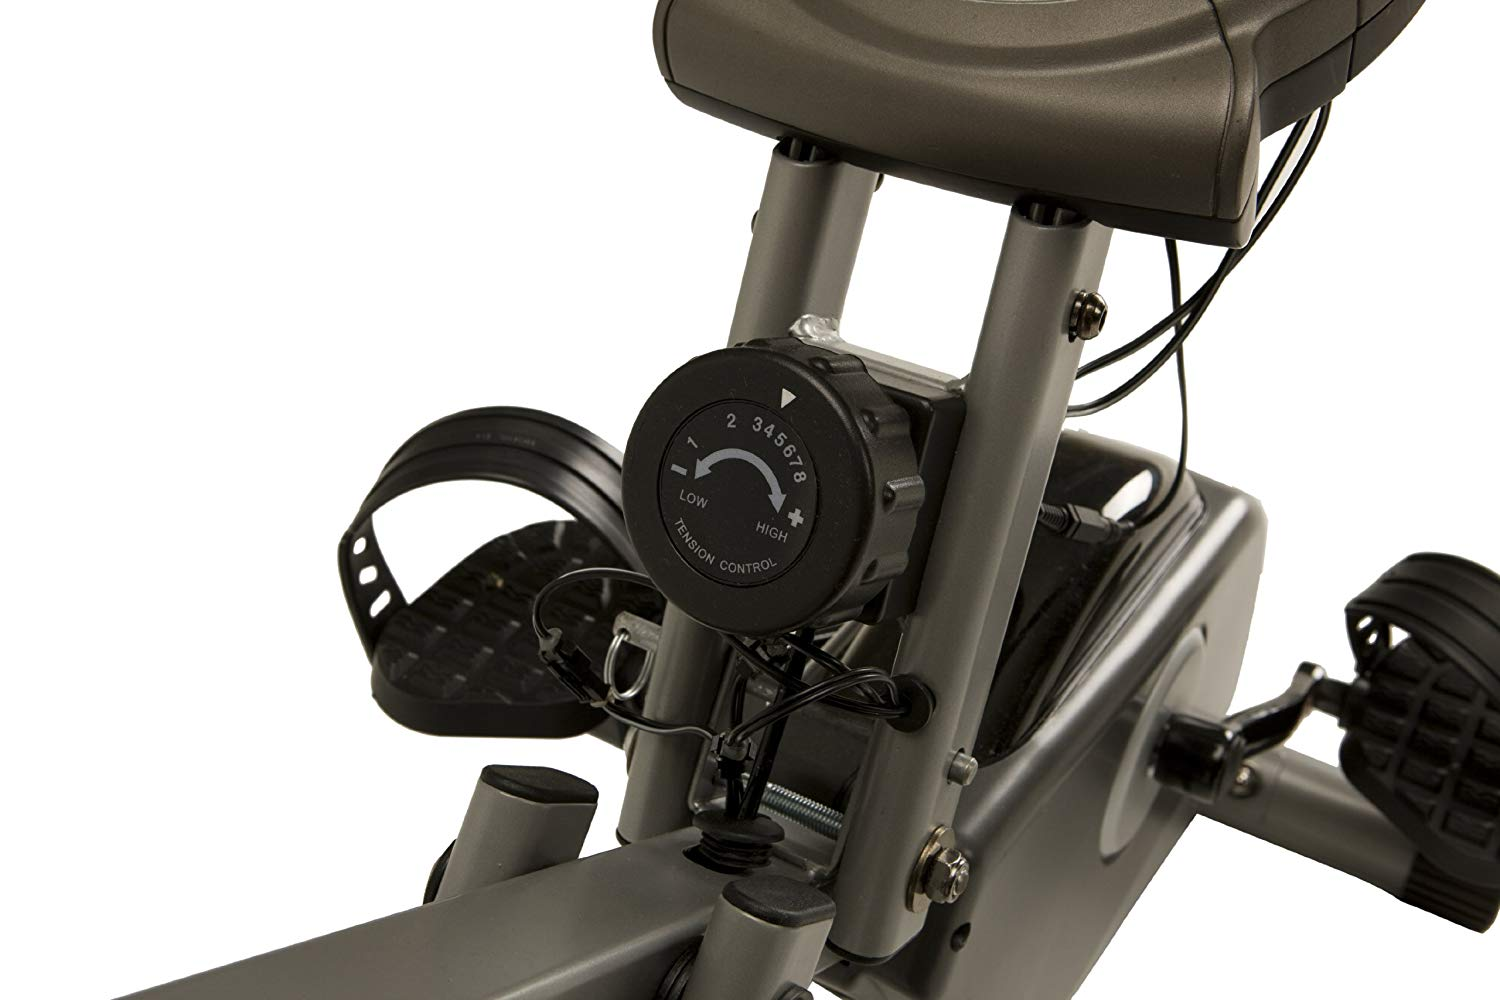 Exerpeutic 400XL recumbent bike review